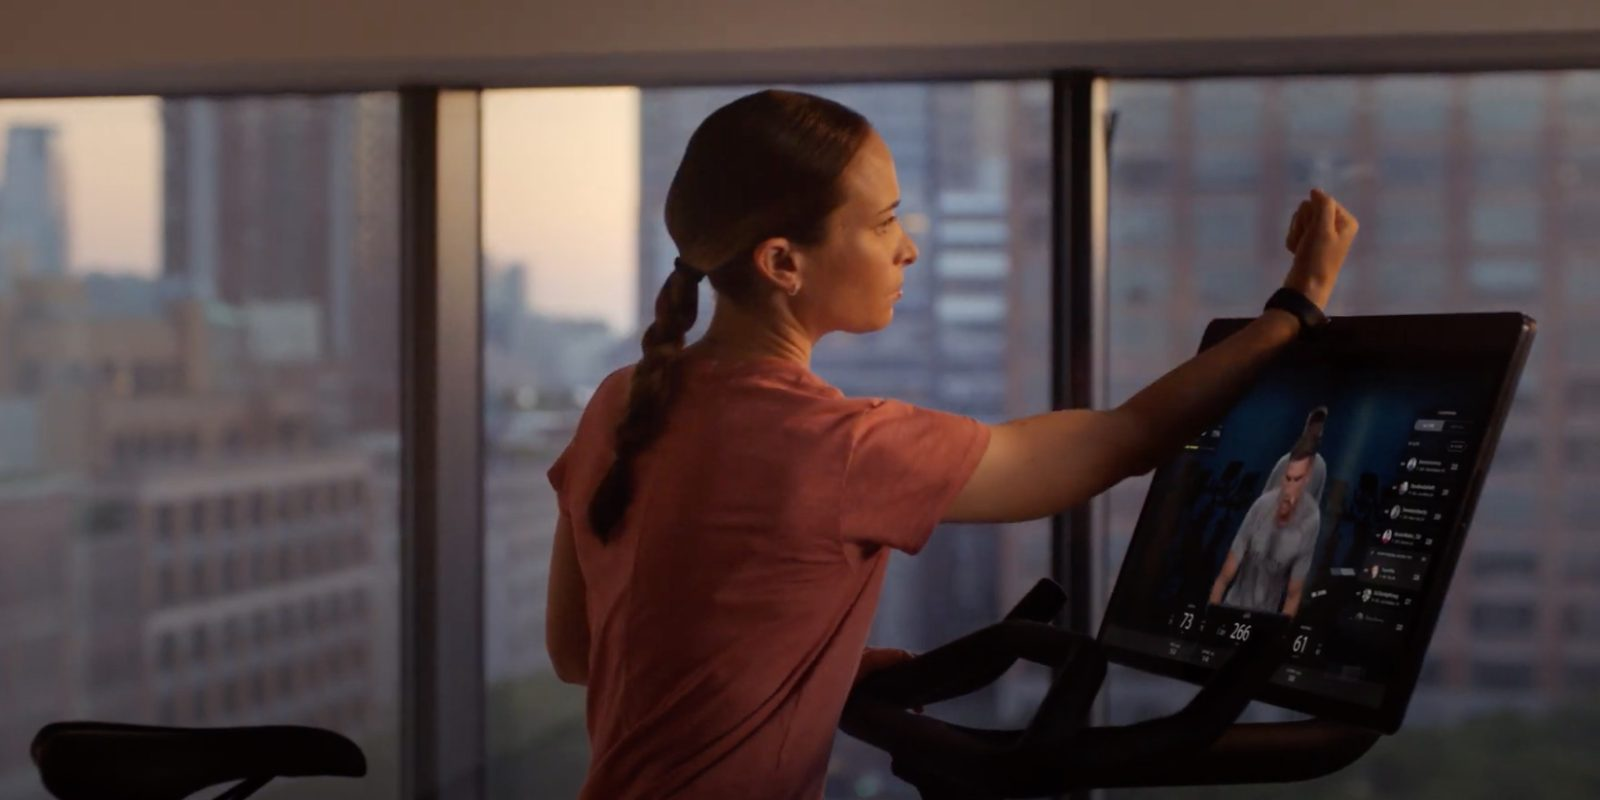 Peloton launches new 'Bike+' exercise bike featuring Apple Watch GymKit support